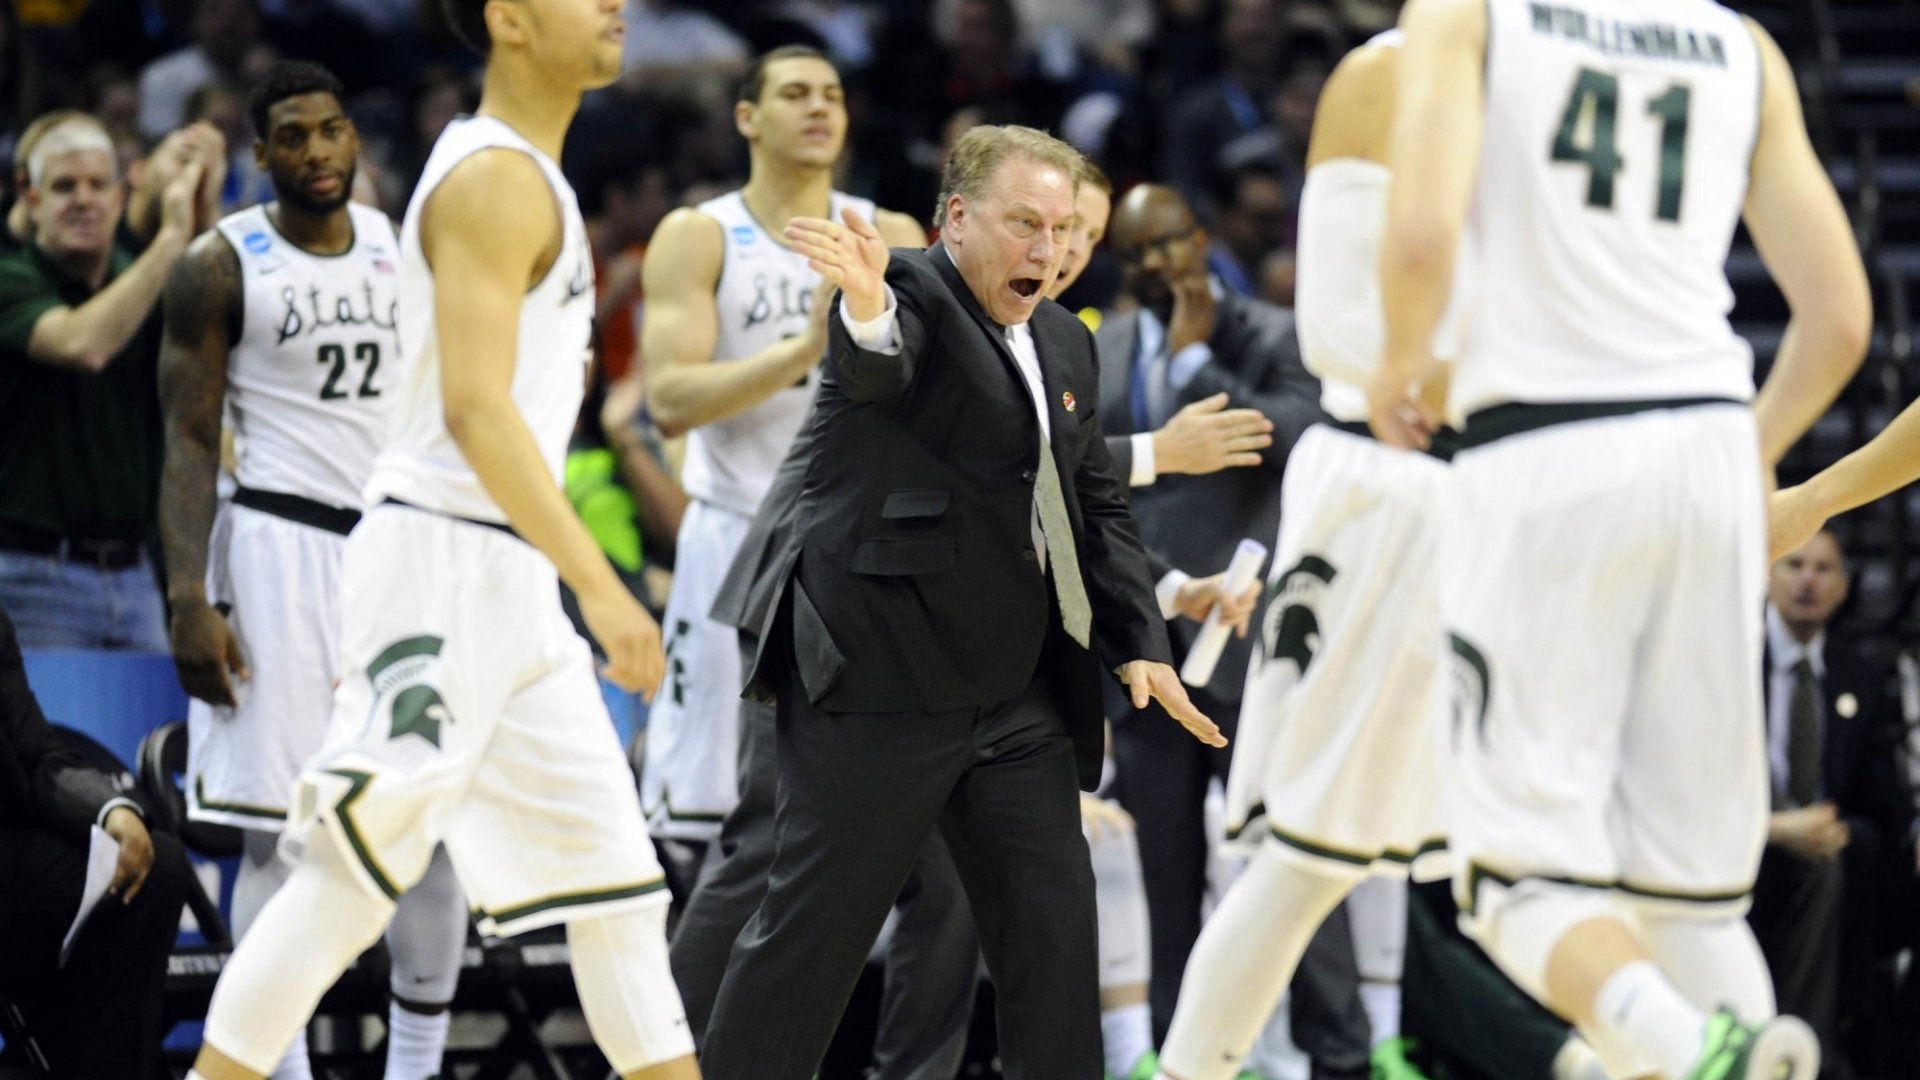 Basketball Coach Tom Izzo's Screaming Rant Was Over the Line. It's a Lesson for All Leaders in Accountability